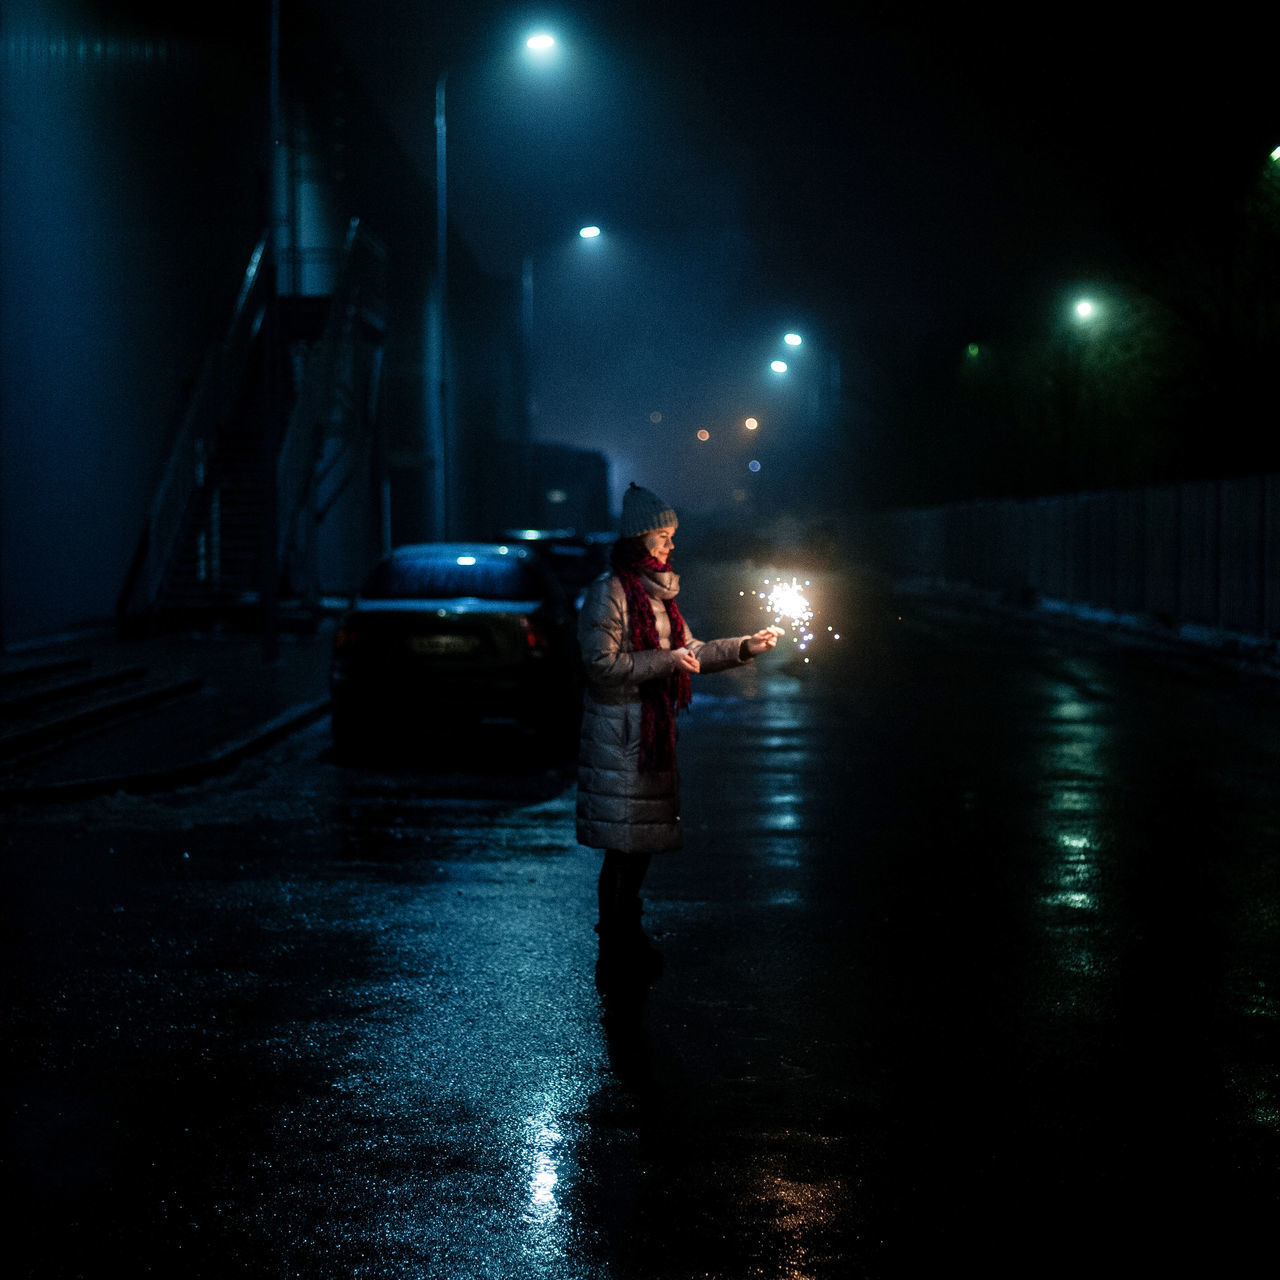 Standing Astronomy Foggy Weather Illuminated Night One Woman Only Streetphoto Road Light Street Light Streetphotography People Real People Foggy weather Fog Fireworks Sky Outdoors